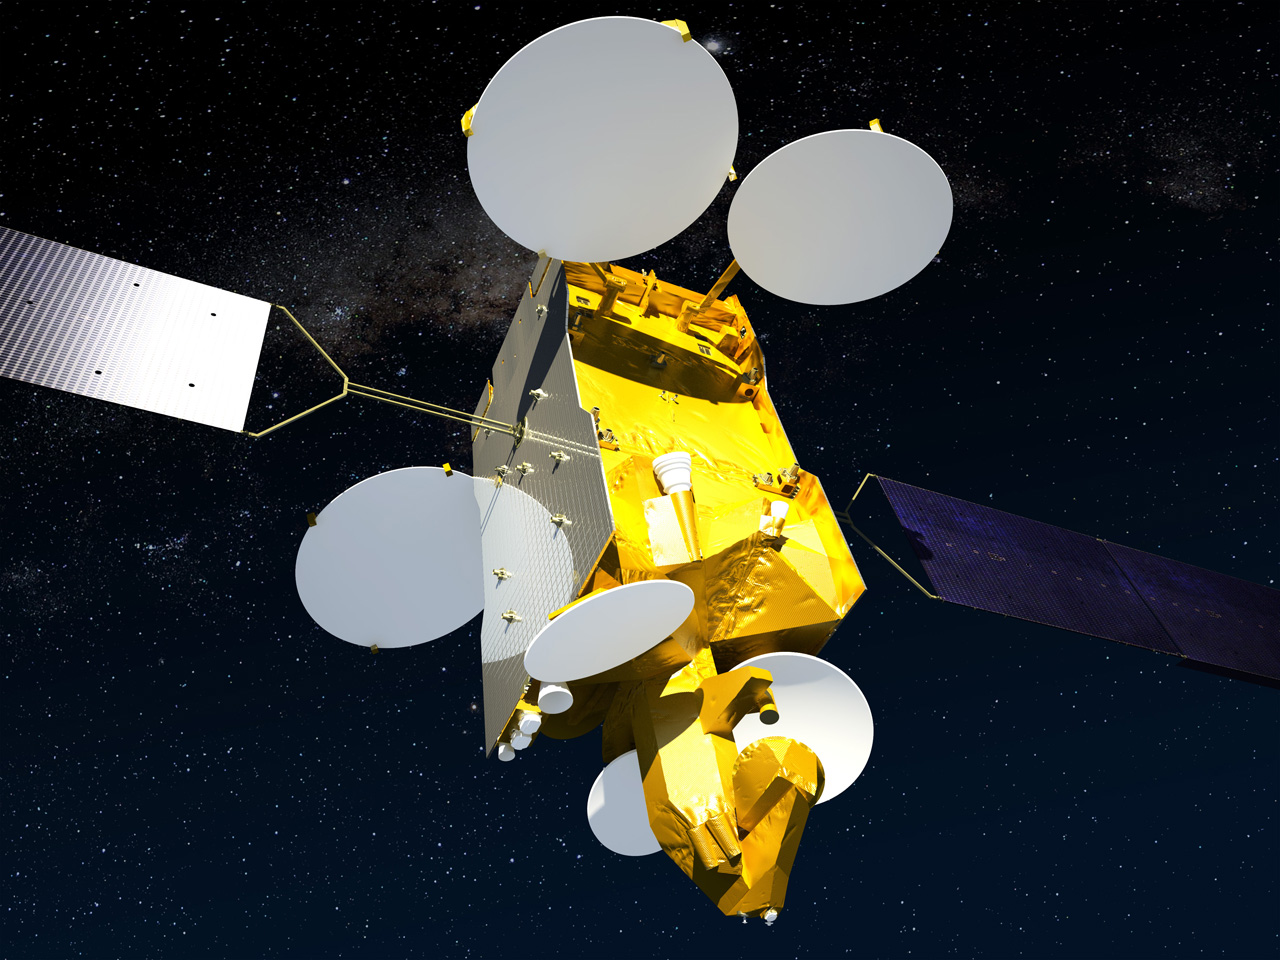 Artist's concept of the ASTRA 2G satellite in orbit. Credit: Airbus Defense and Space